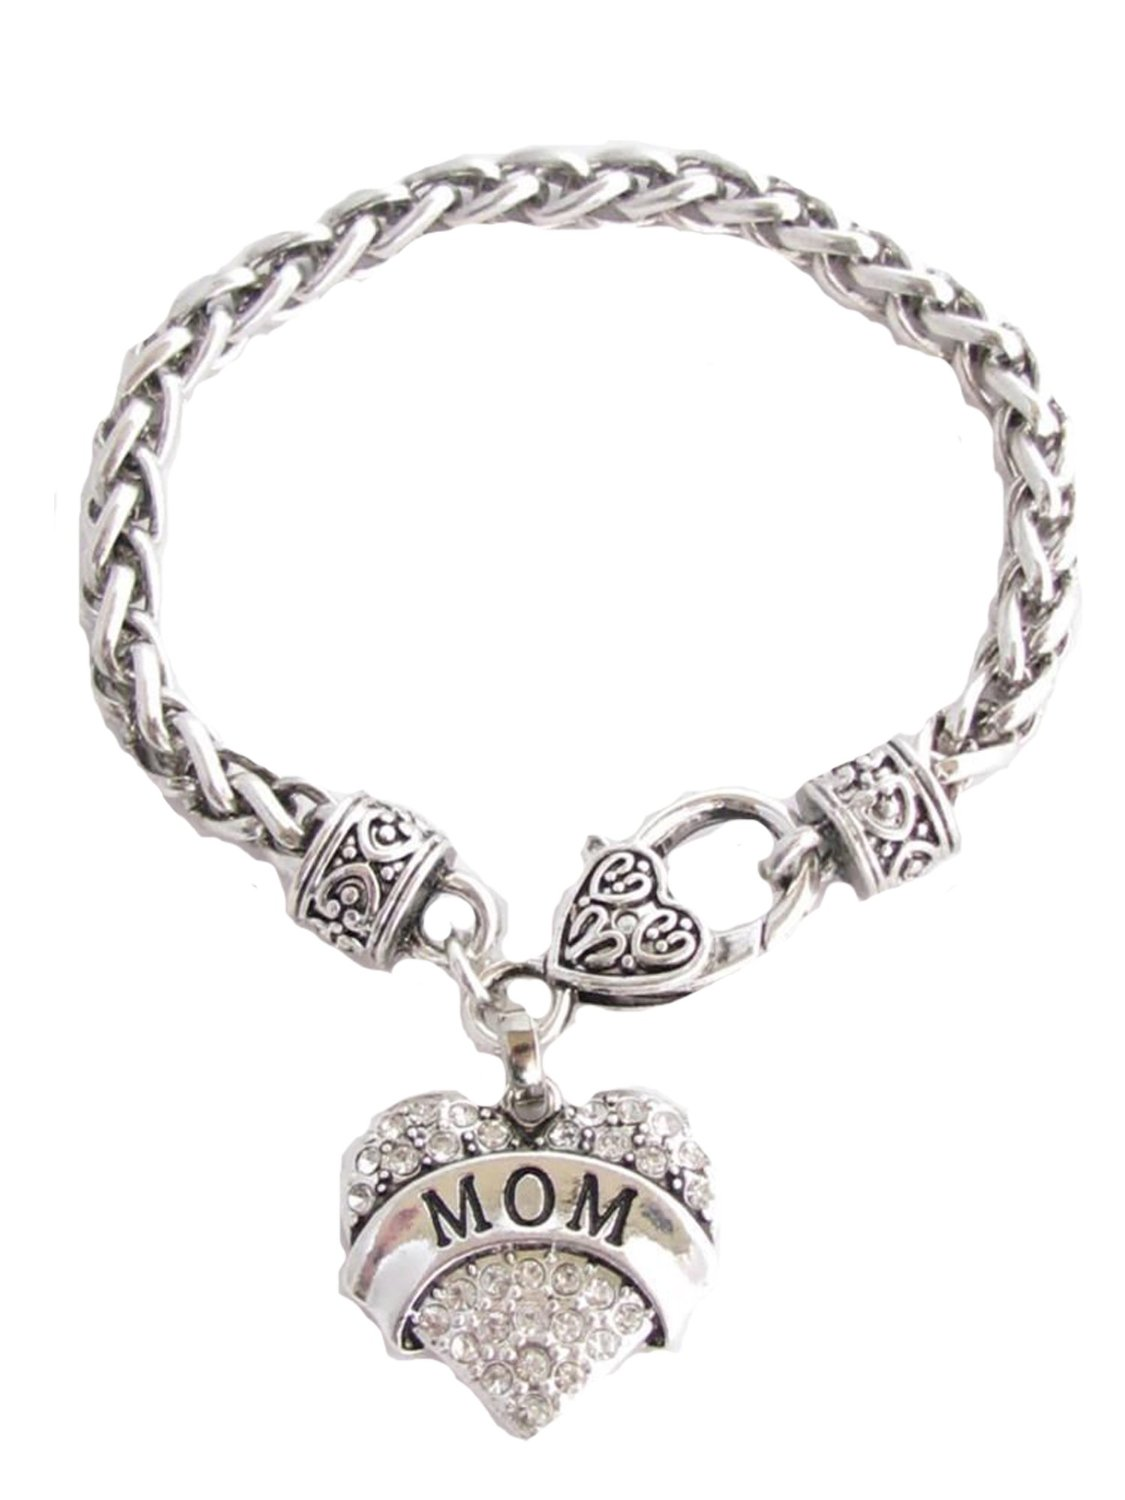 Amazon HOT Deal: Mom Clear Crystals Fashion Lobster Claw Heart Bracelet Only $3.12!